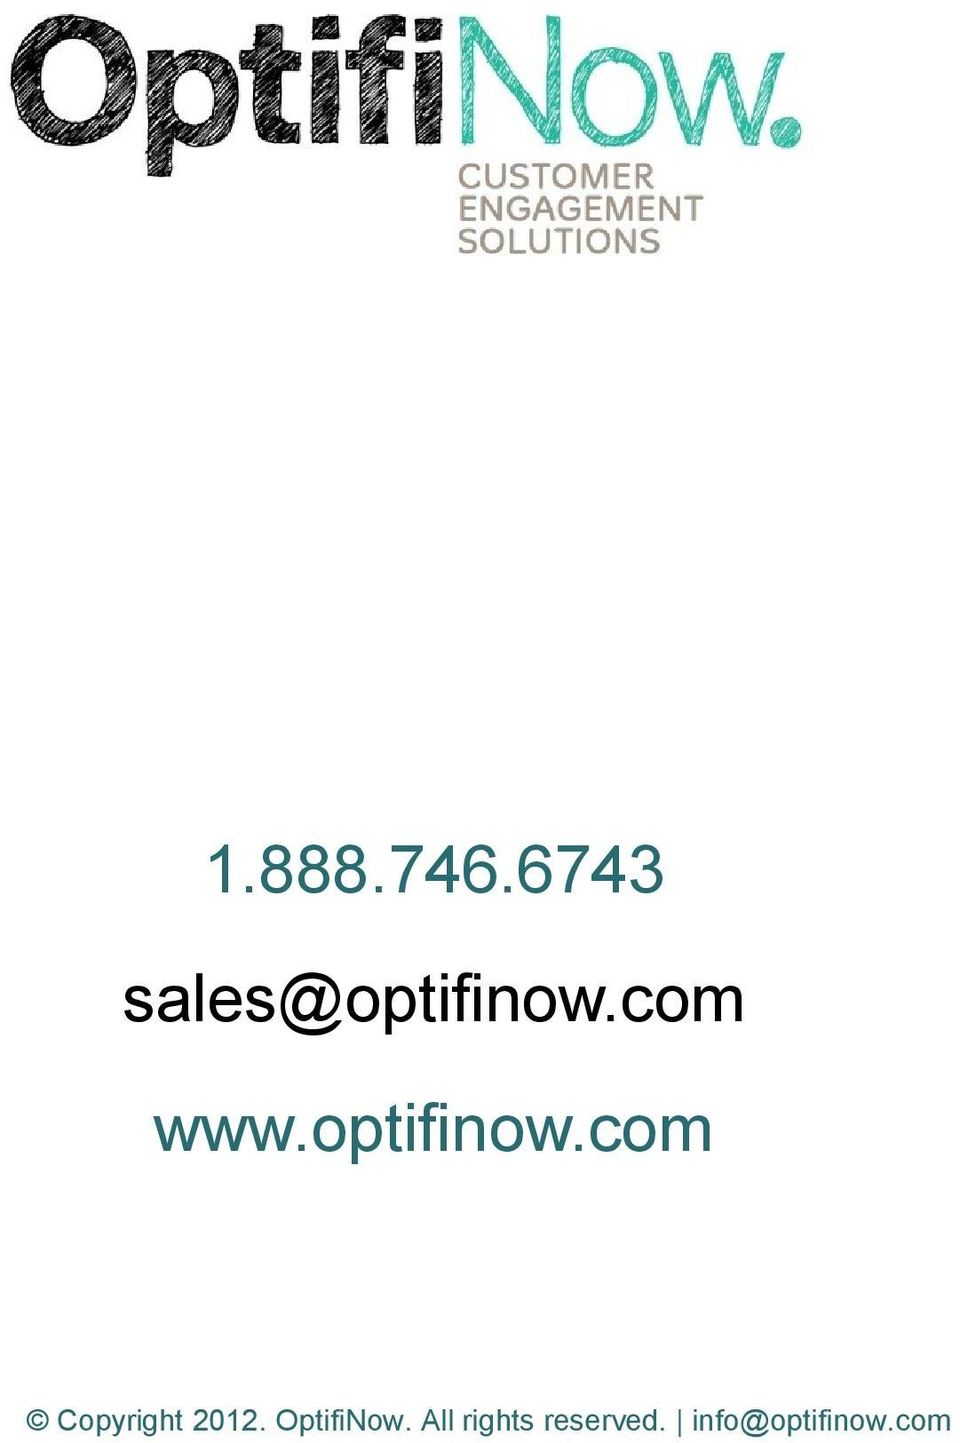 optifinow.com Copyright 2012.